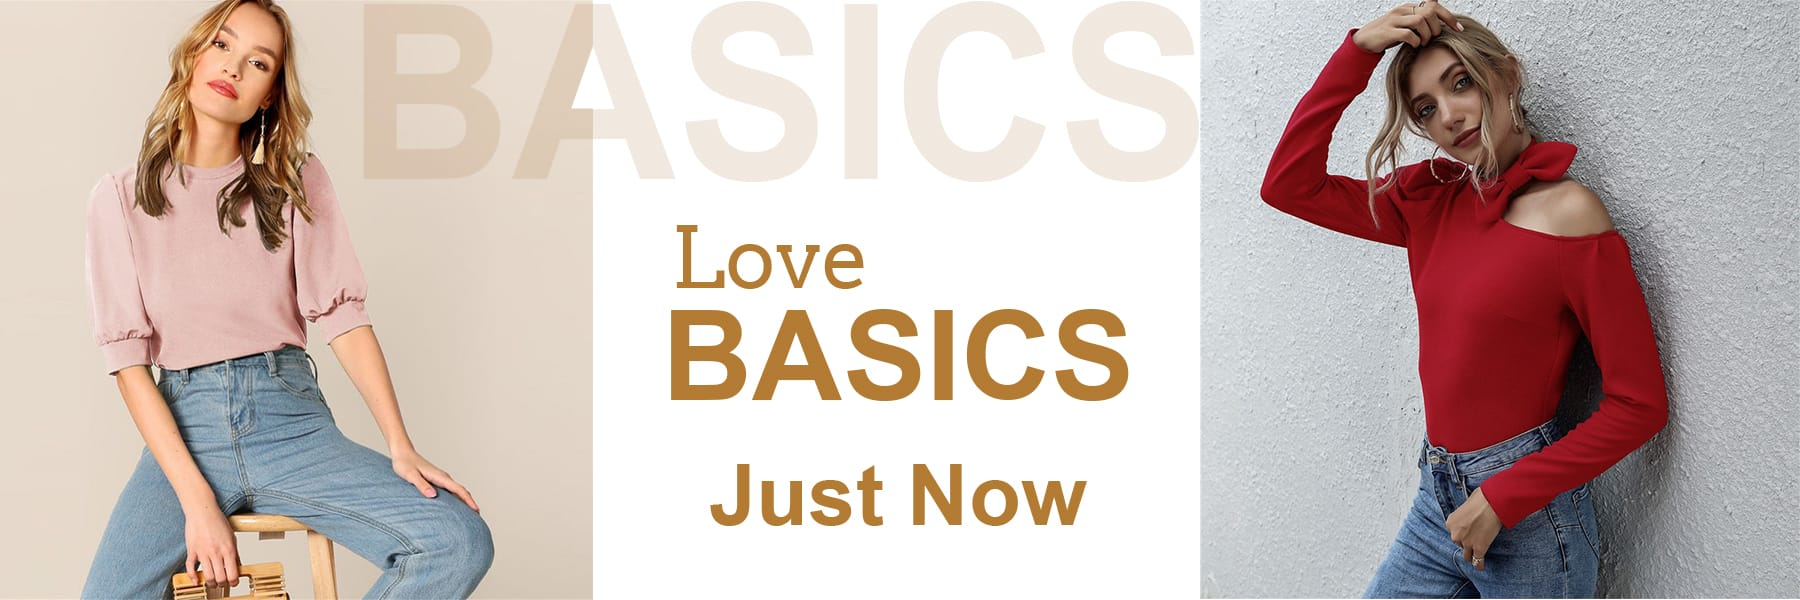 Fascination Of The Basics